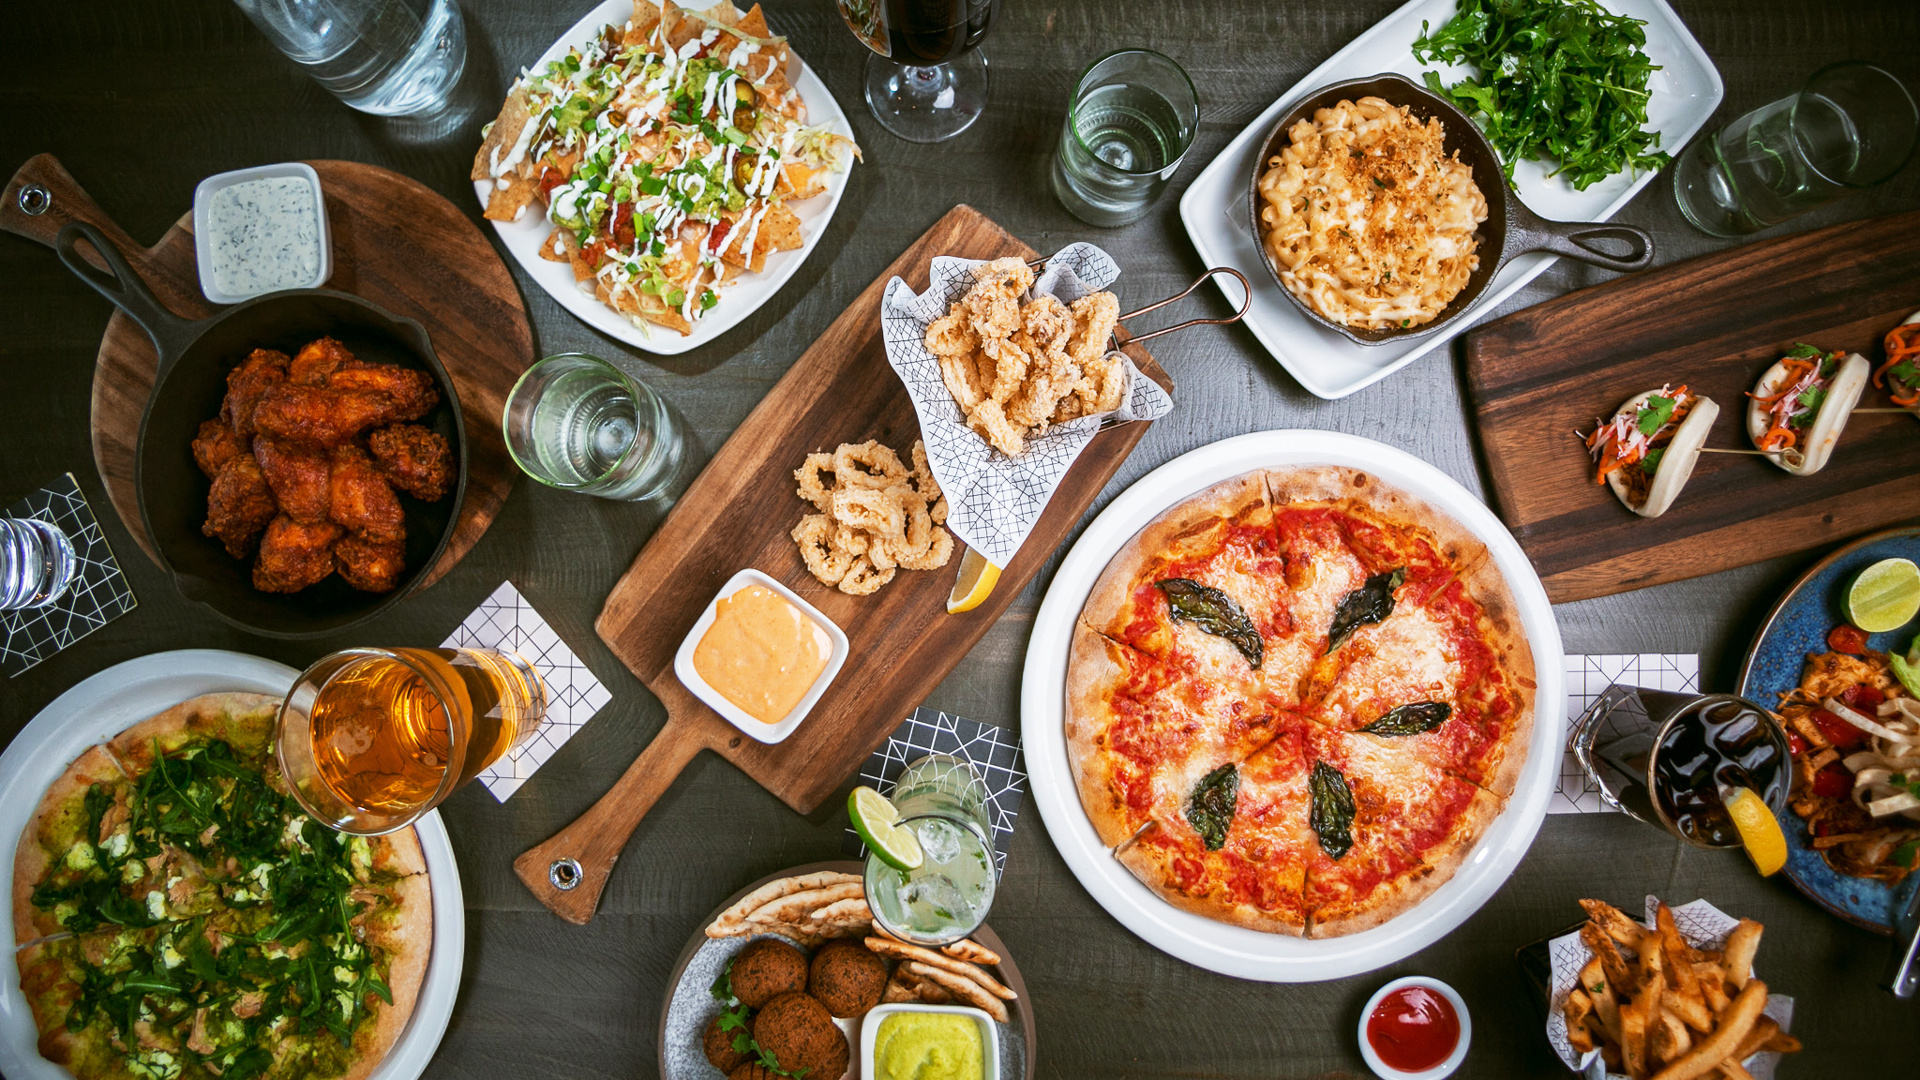 Win dinner and games from the Rec Room